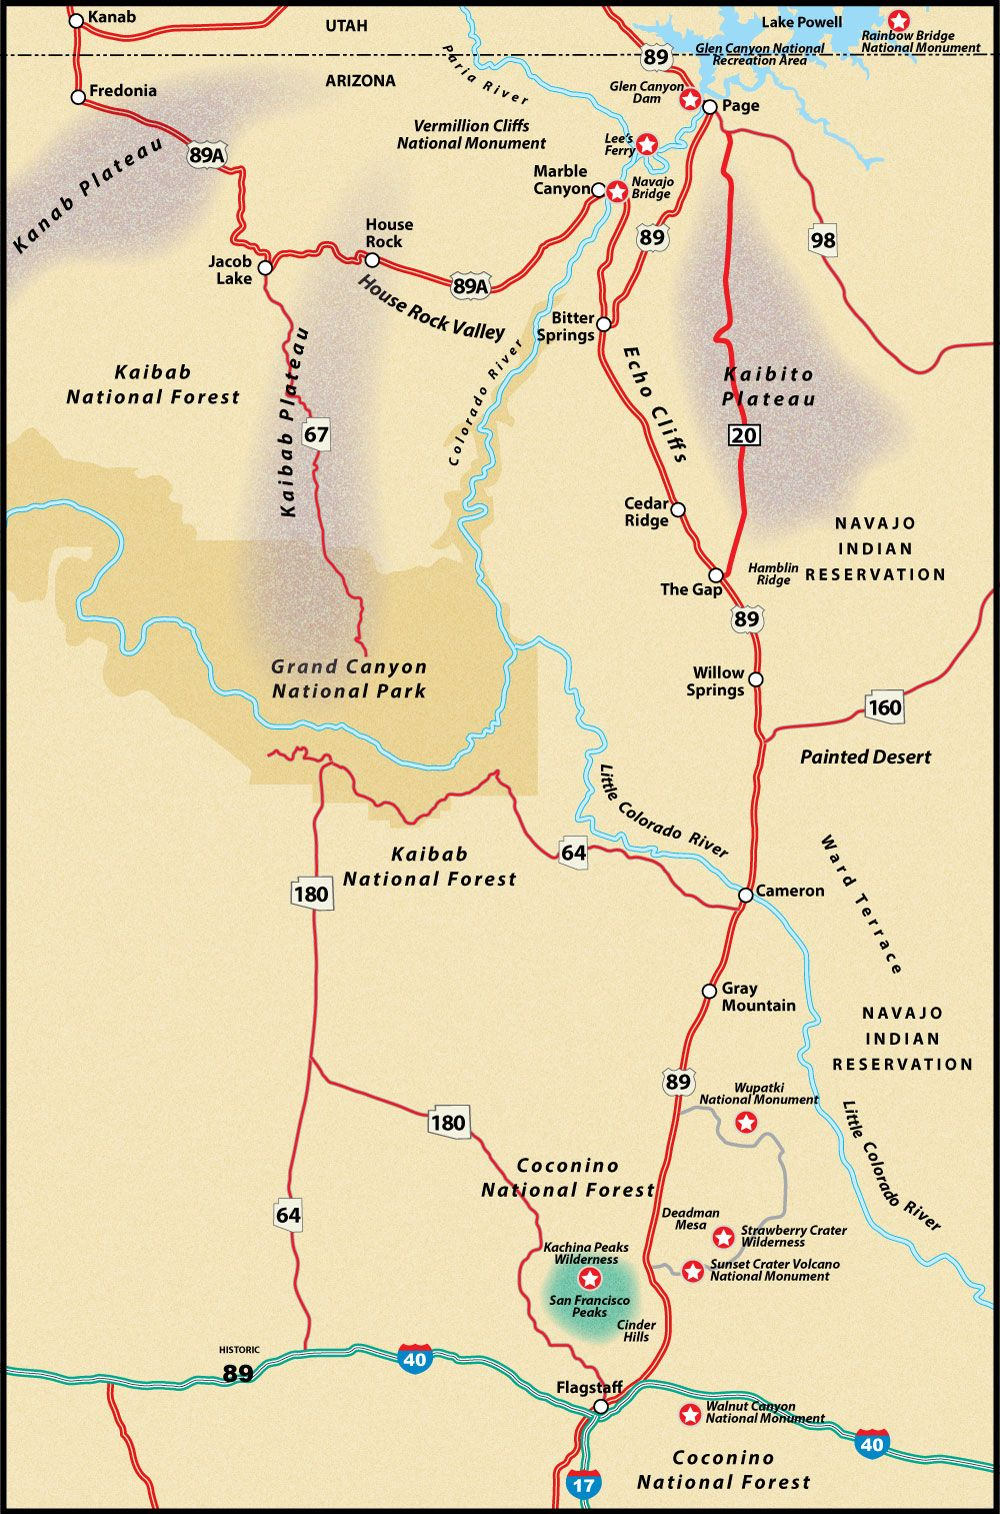 US Route 89 Flagstaff to Page Road Trip Guide Map | route 89 ...